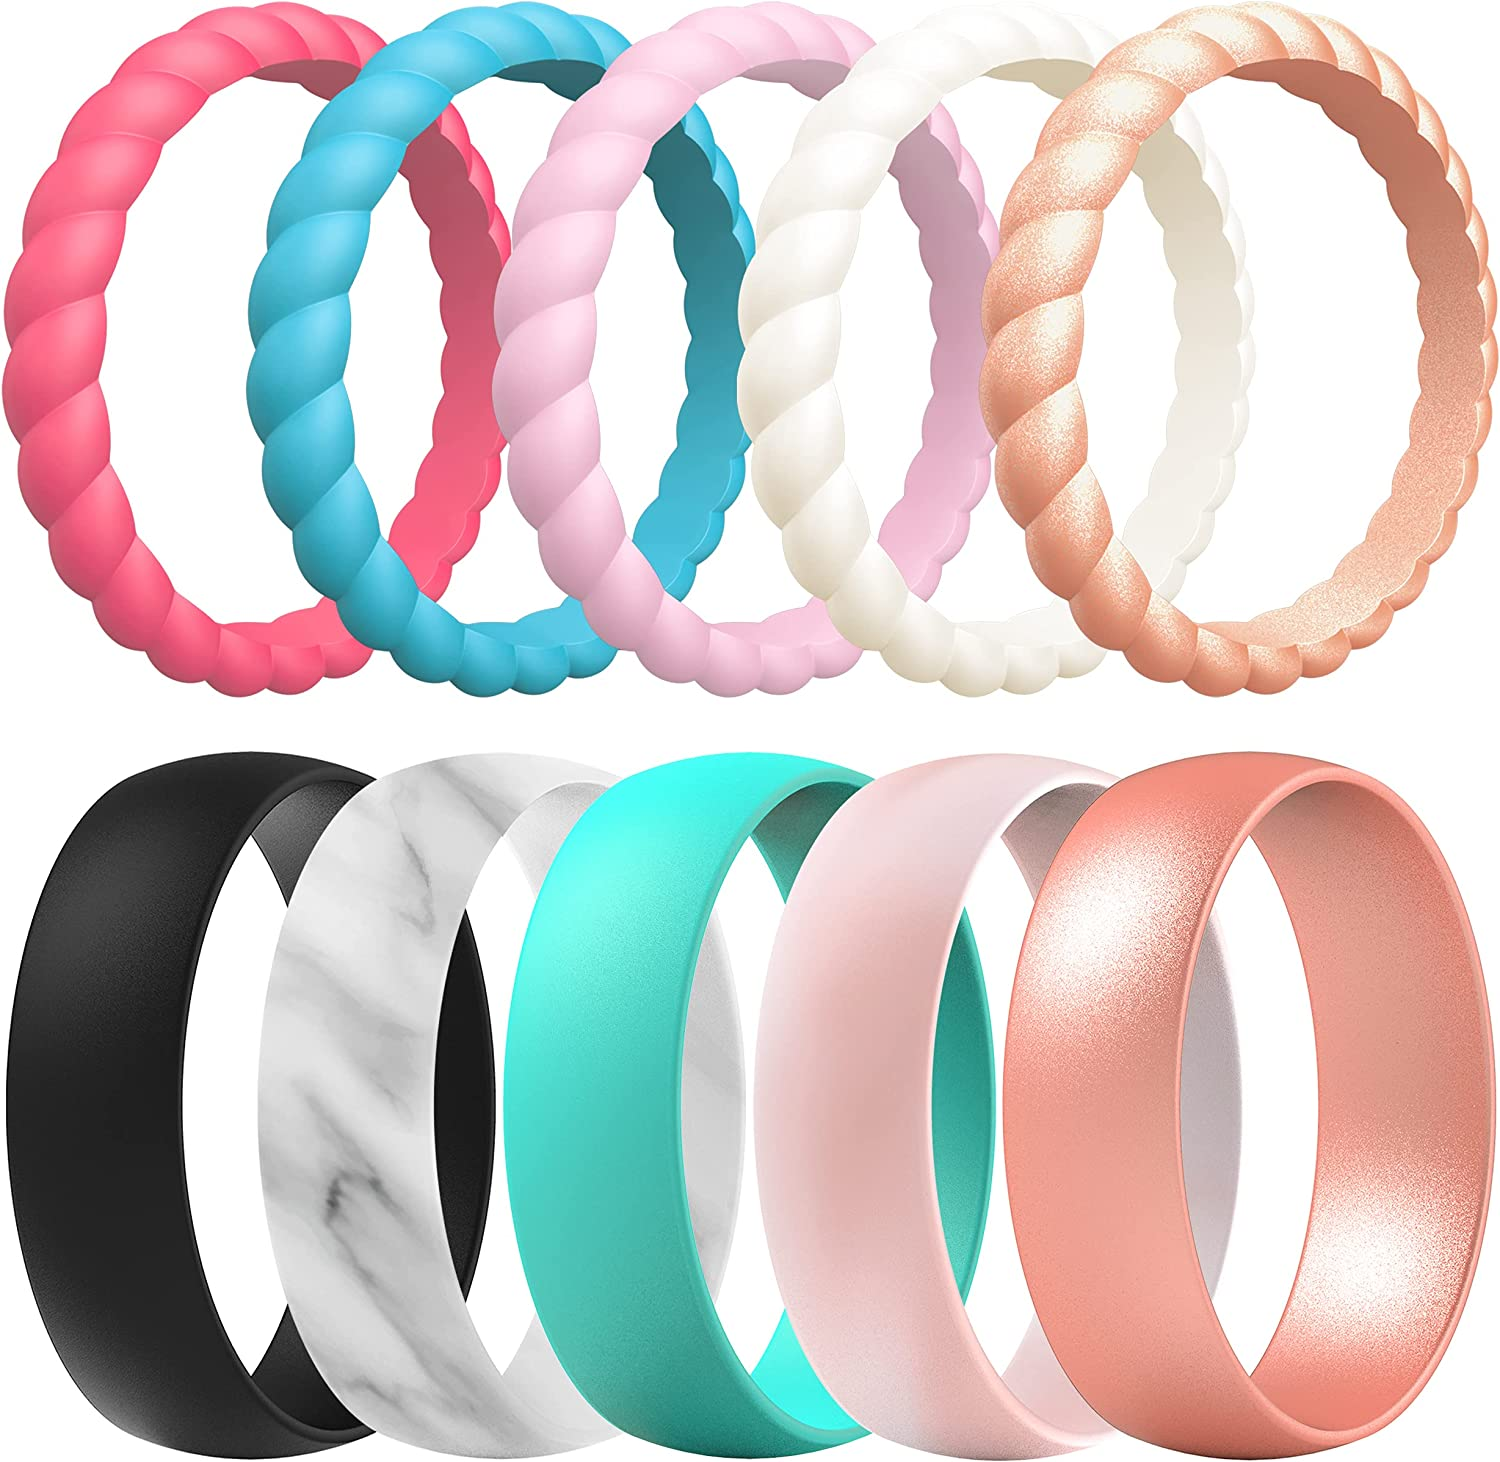 ThunderFit Silicone Wedding Ring for Women - 10/16 Rings Mixed Packs - Rubber Engagement Bands